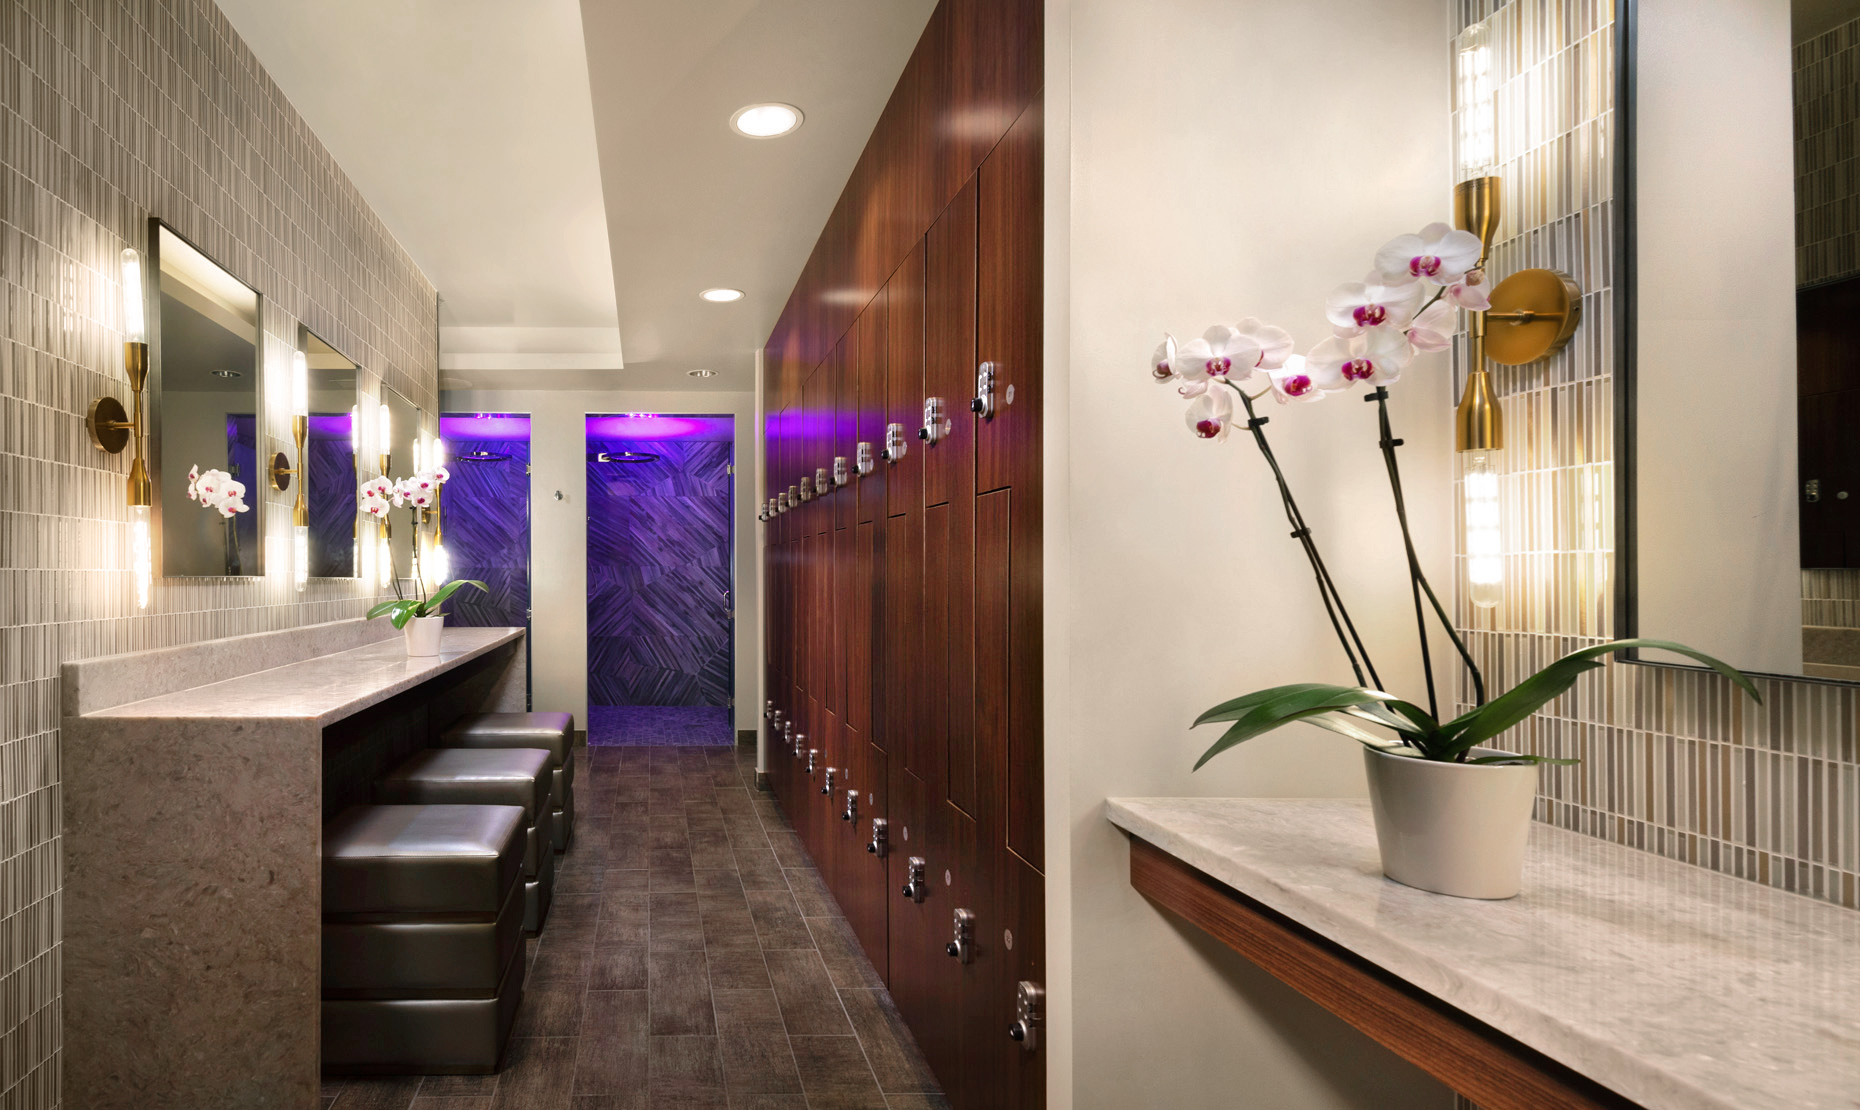 Hotel-Spa-Eurostars-Magnificent-Mile-Chicago-Spa-Luxury-Comercial-Architecture-Interiors-Enrique-Serrano-Fotografo